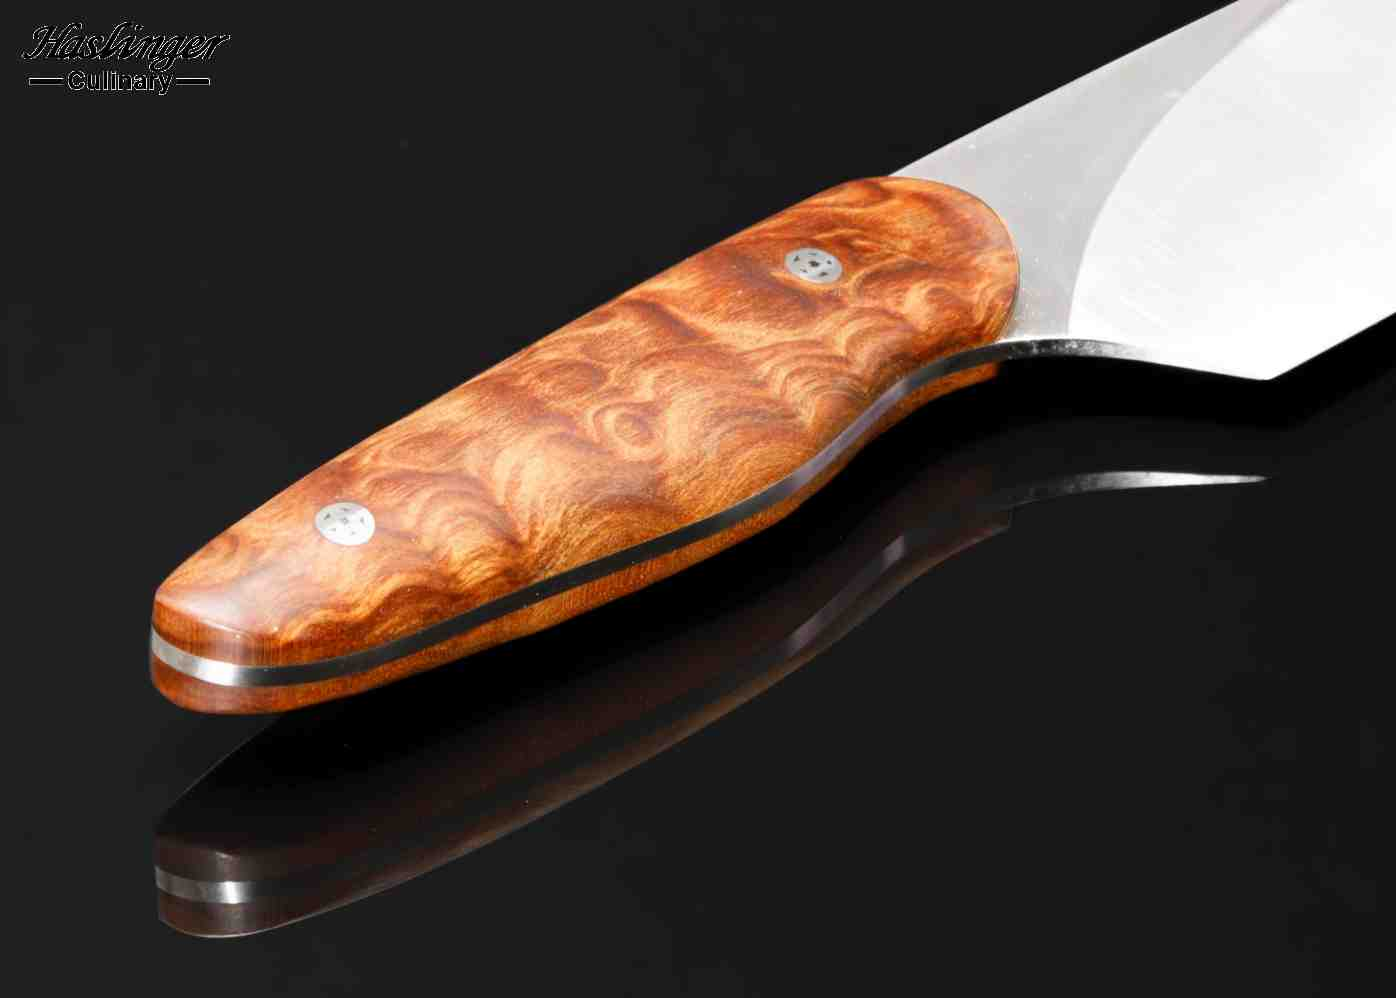 Evolution chef with quilted maple handle - close up